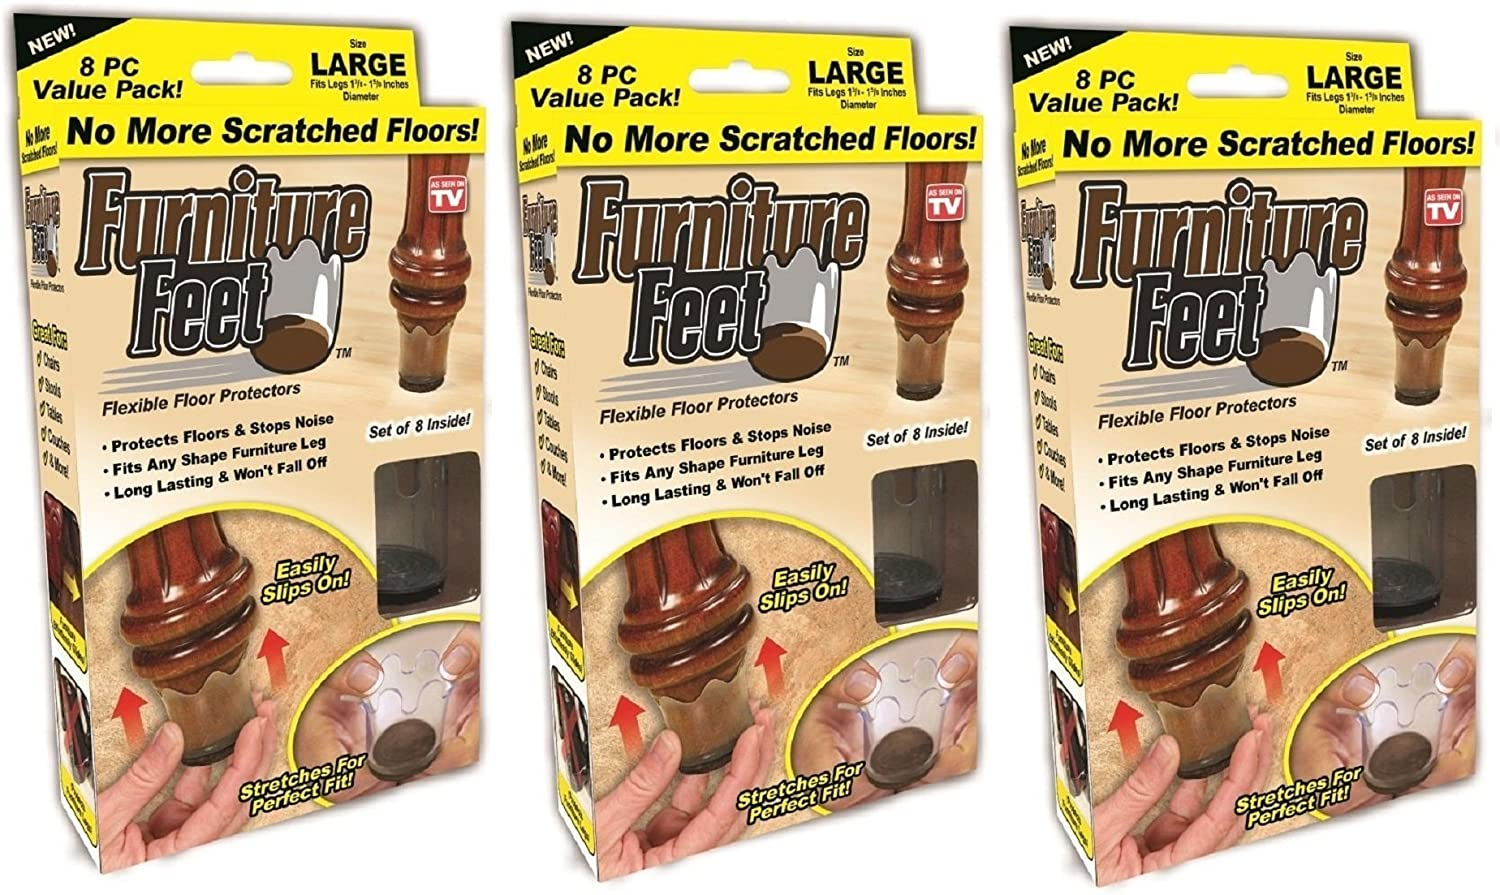 "Furniture Feet Flexible Floor Protectors, Fits Legs 1 3/8""-1 5/8"", Large, 24 Pack"